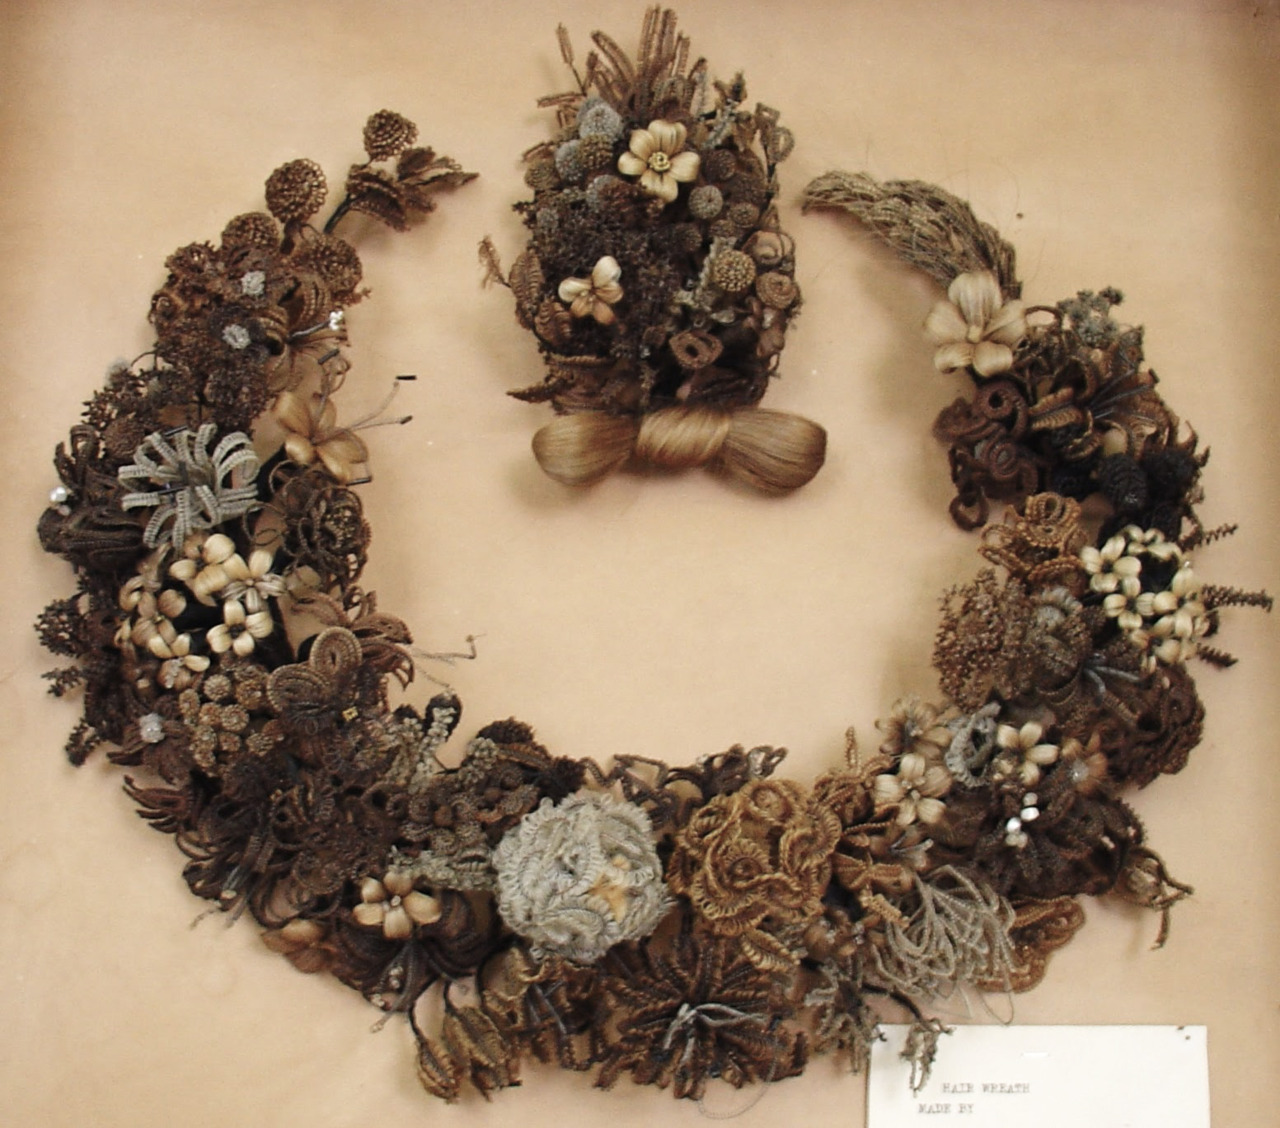 jon-garcia: Hair wreaths, which were primarily created between 1850 and 1880, were made by Victorian women. These women tended to be middle and upper-class, as they had more time on their hands than did their lower-class counterparts to make crafts. Usually, hair wreaths took the same shape as the one at the museum—that of a horseshoe. And, just like horseshoes, these wreaths were also hung with the open top facing up, facing heavenward.